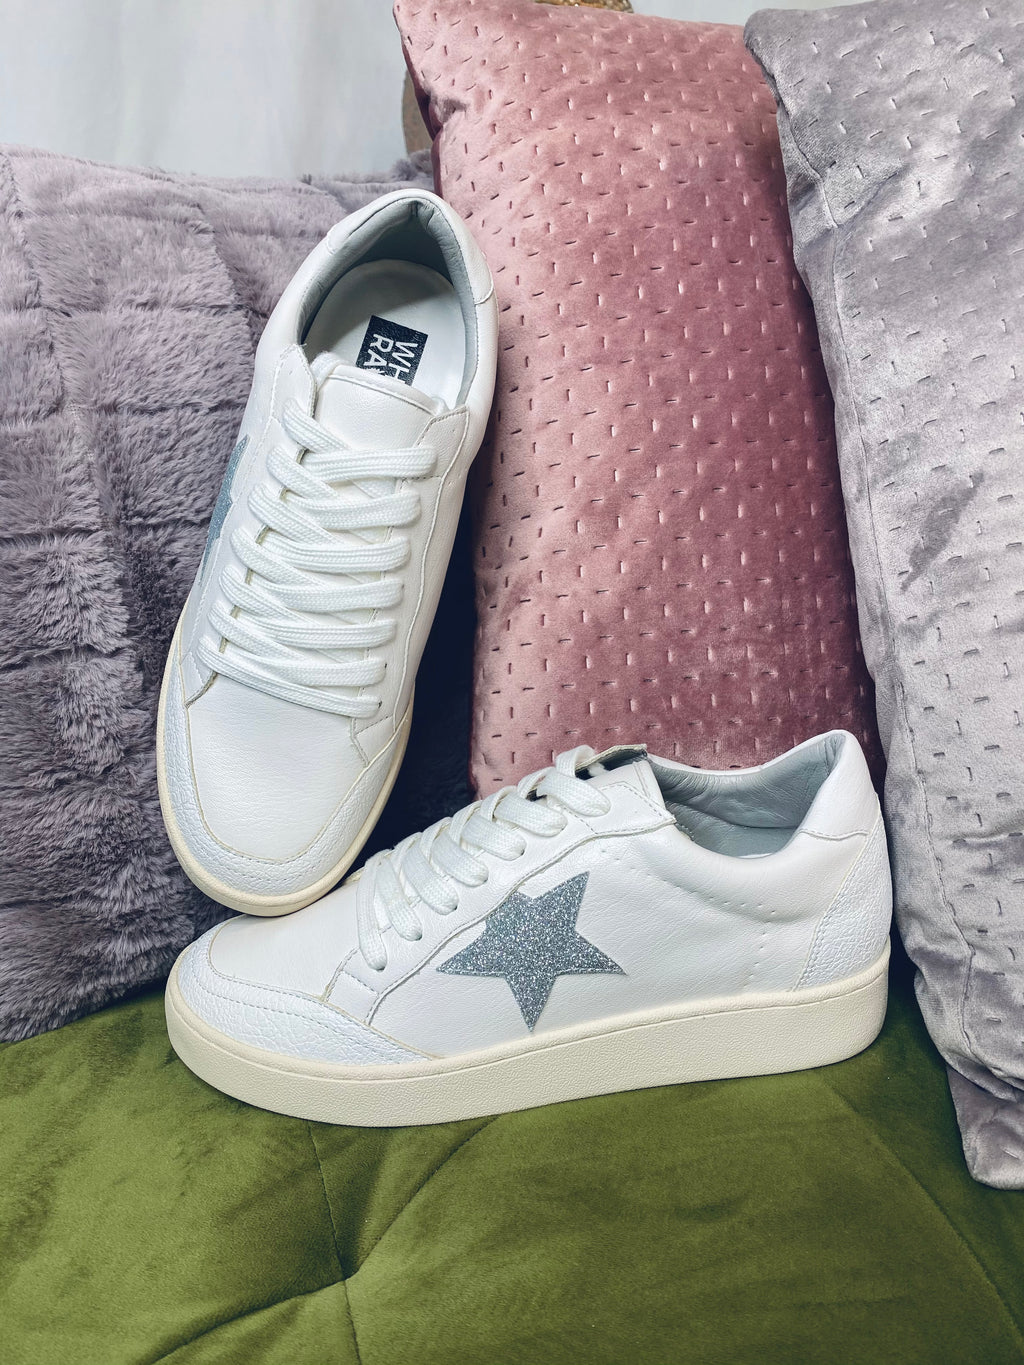 White Sneakers w/ Silver Star